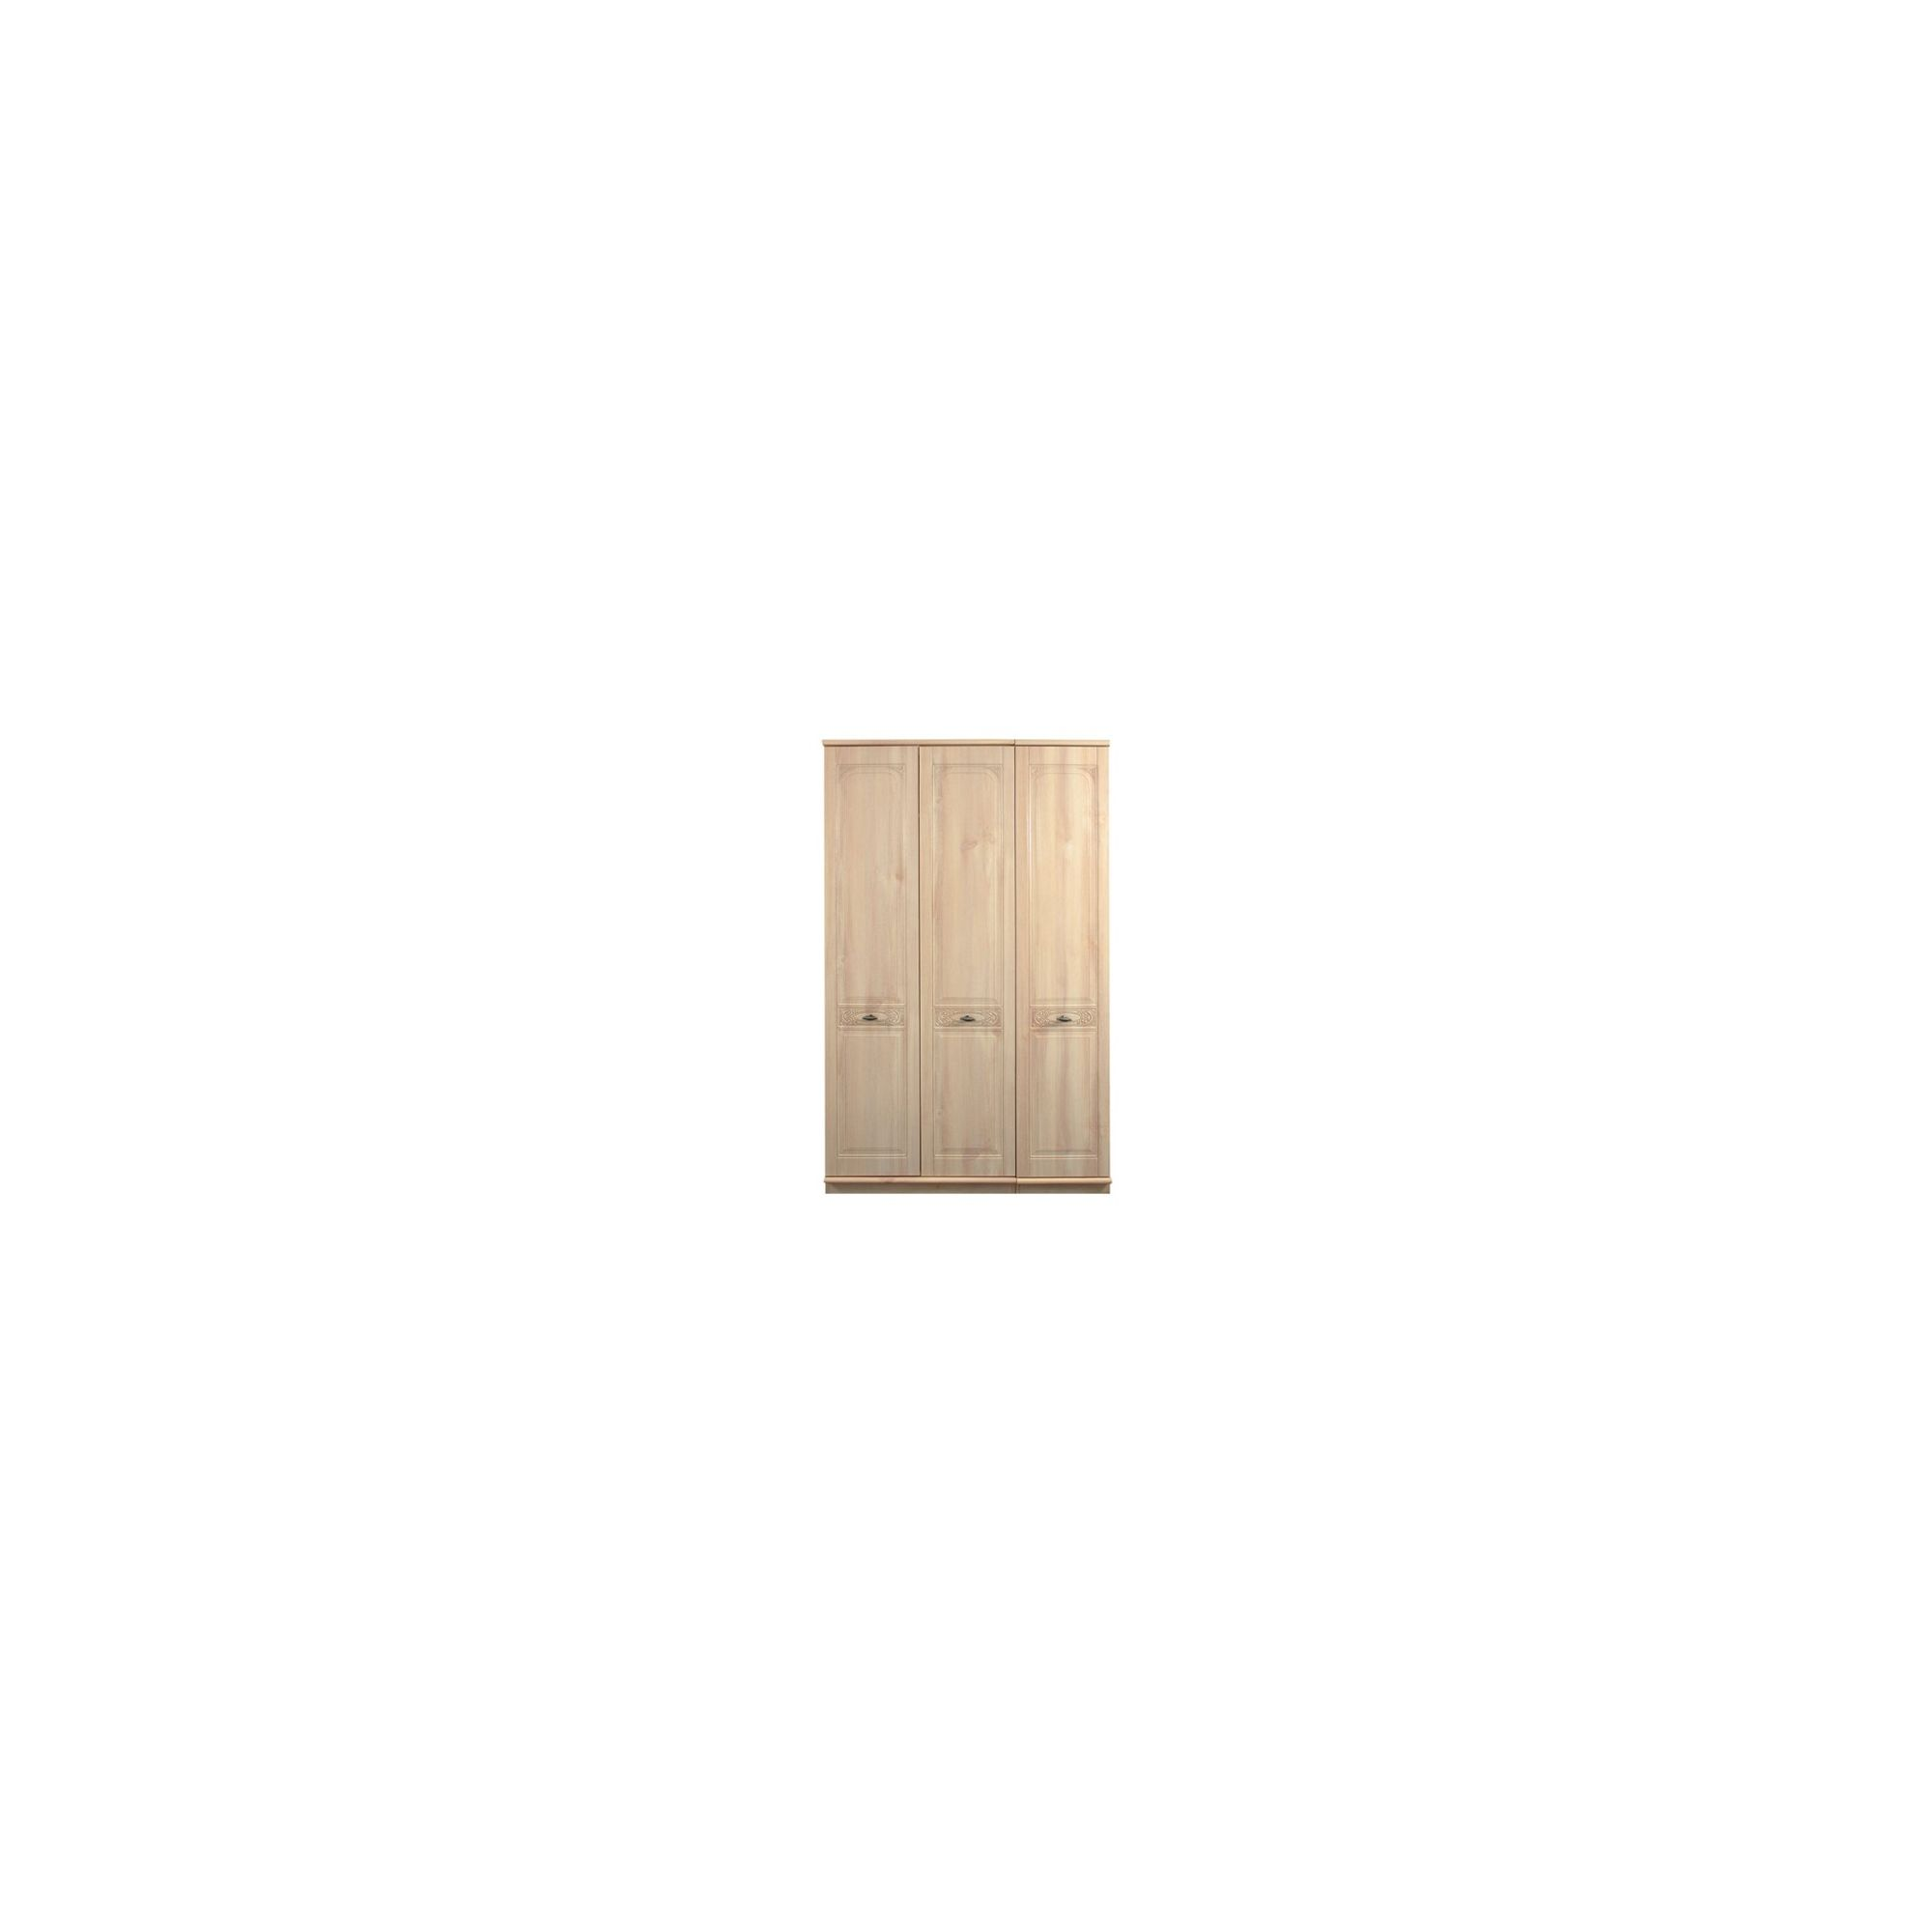 Caxton Florence 3 Door Wardrobe in Washed Oak Effect at Tesco Direct